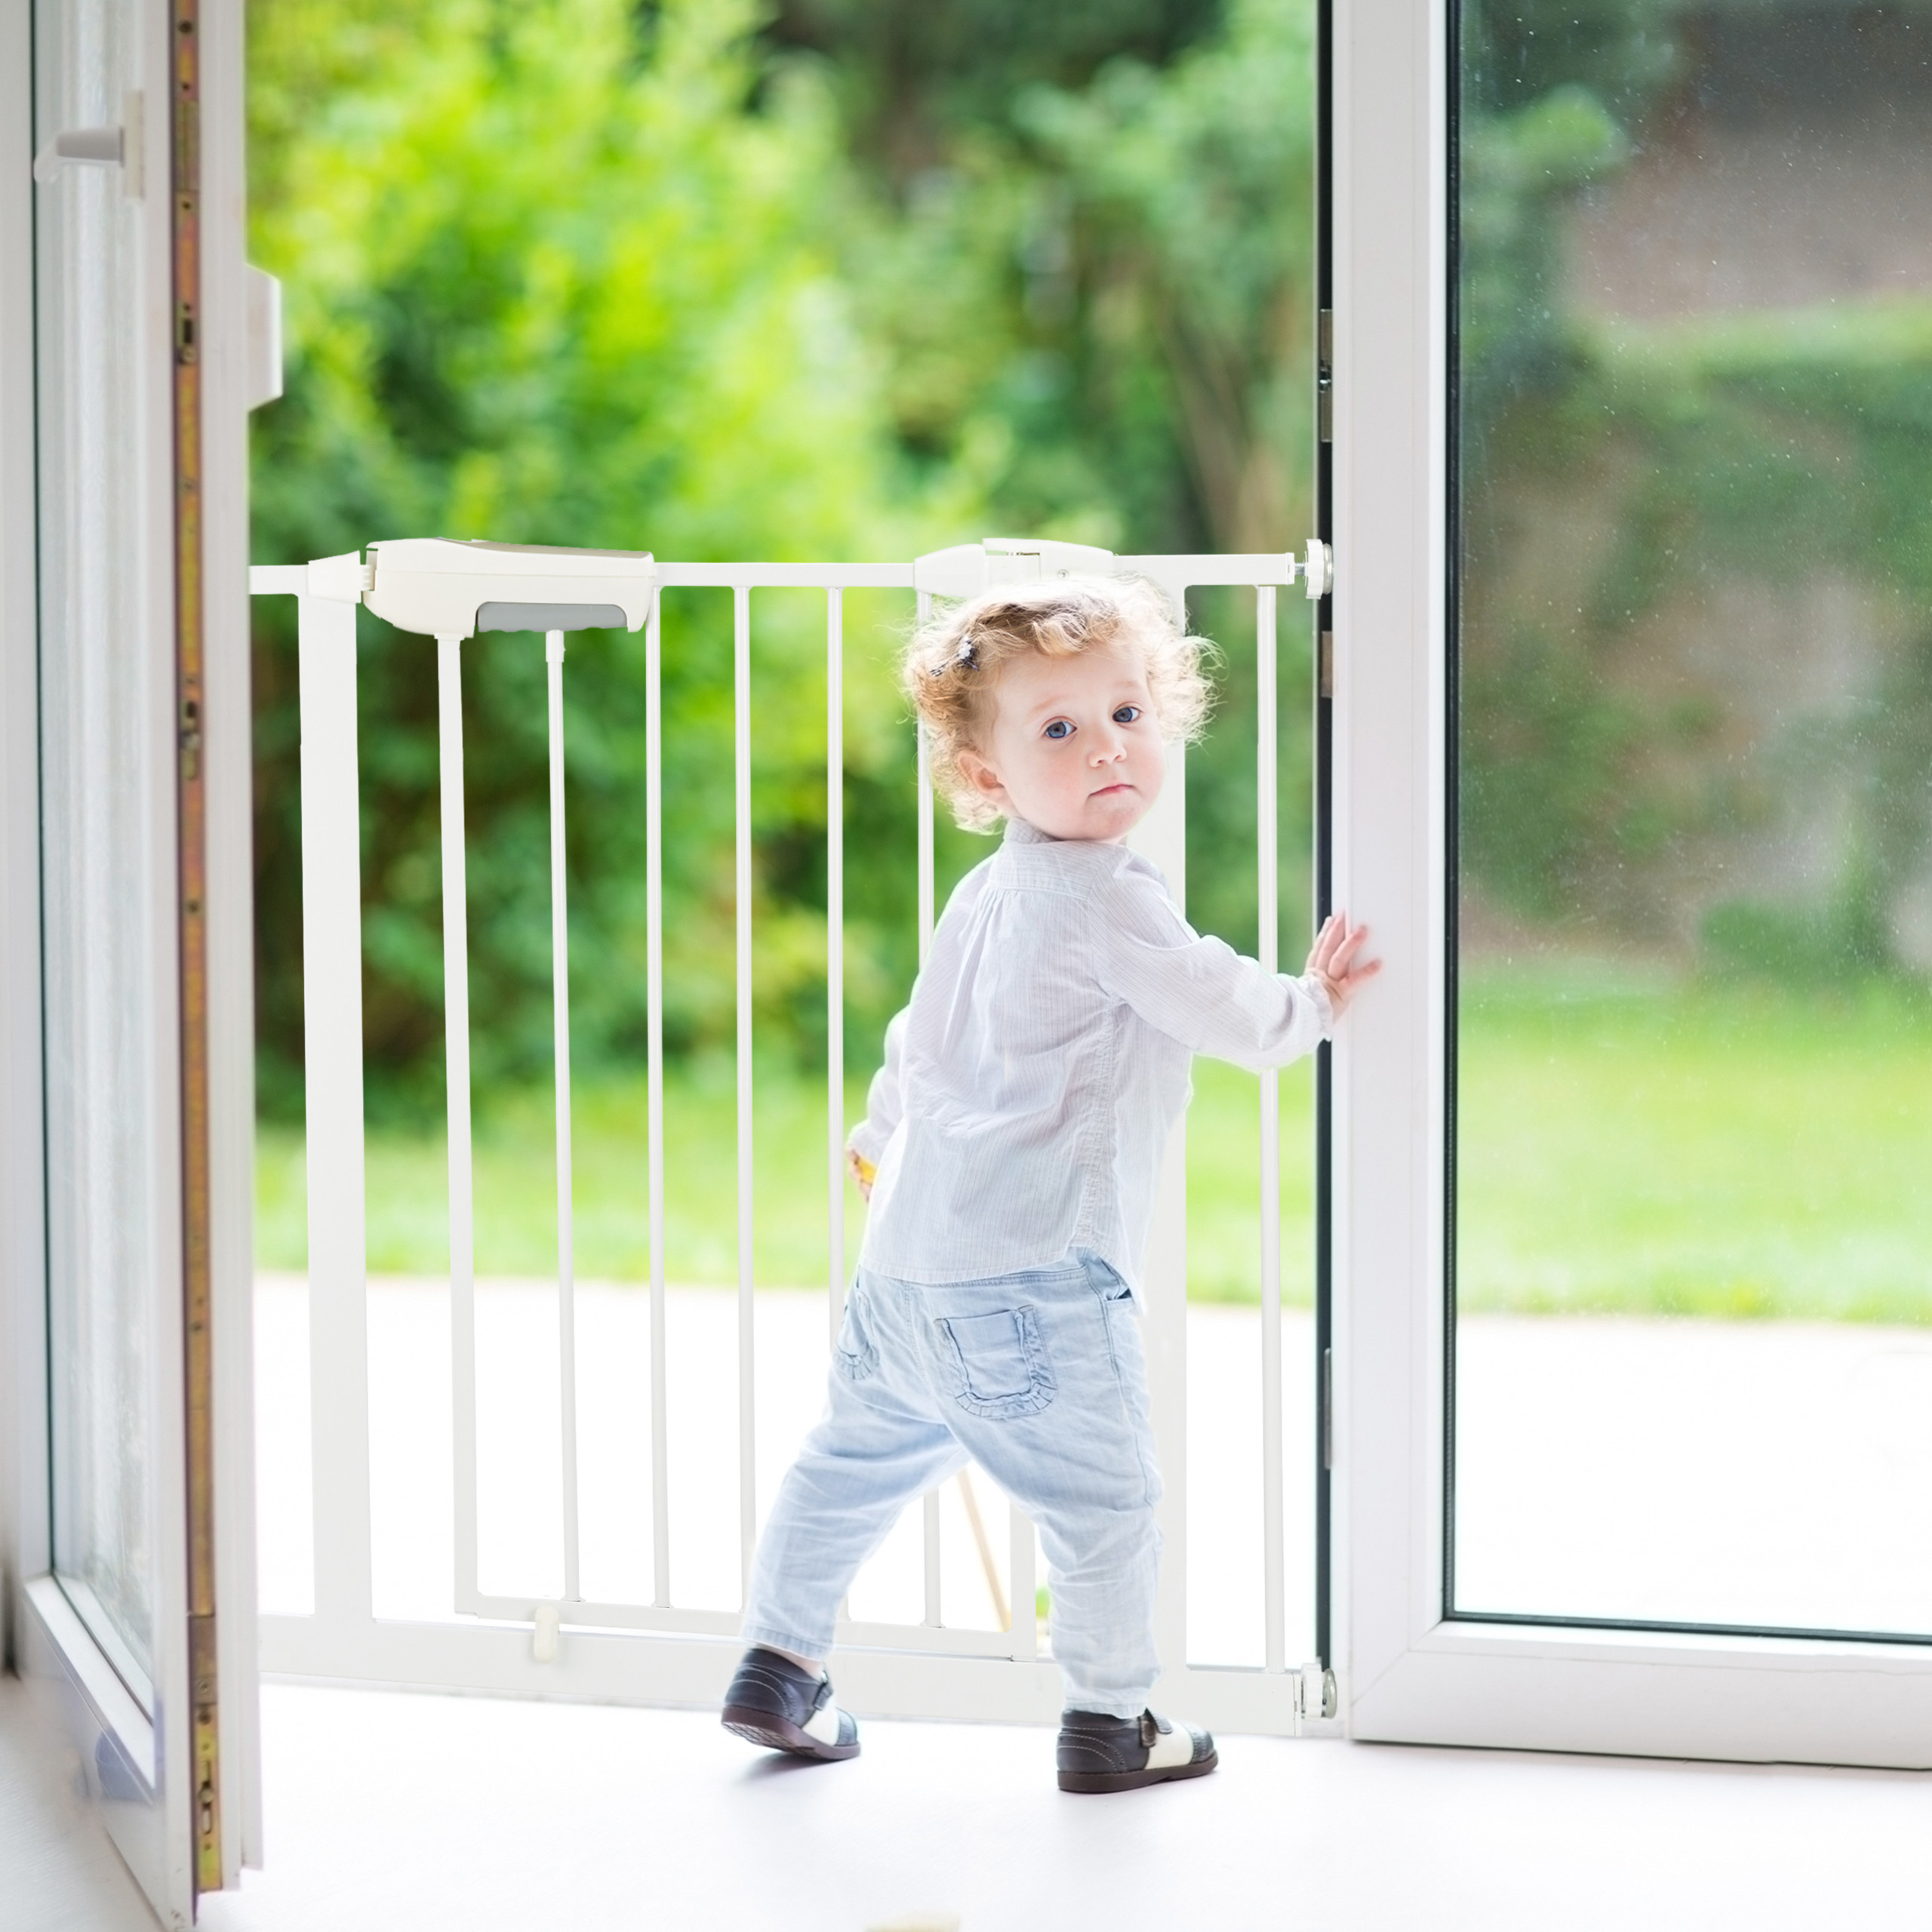 Pressure-Fit-Baby-Safety-Gate-Extension-Security-Barrier-for-Stairs-and-Doors thumbnail 25